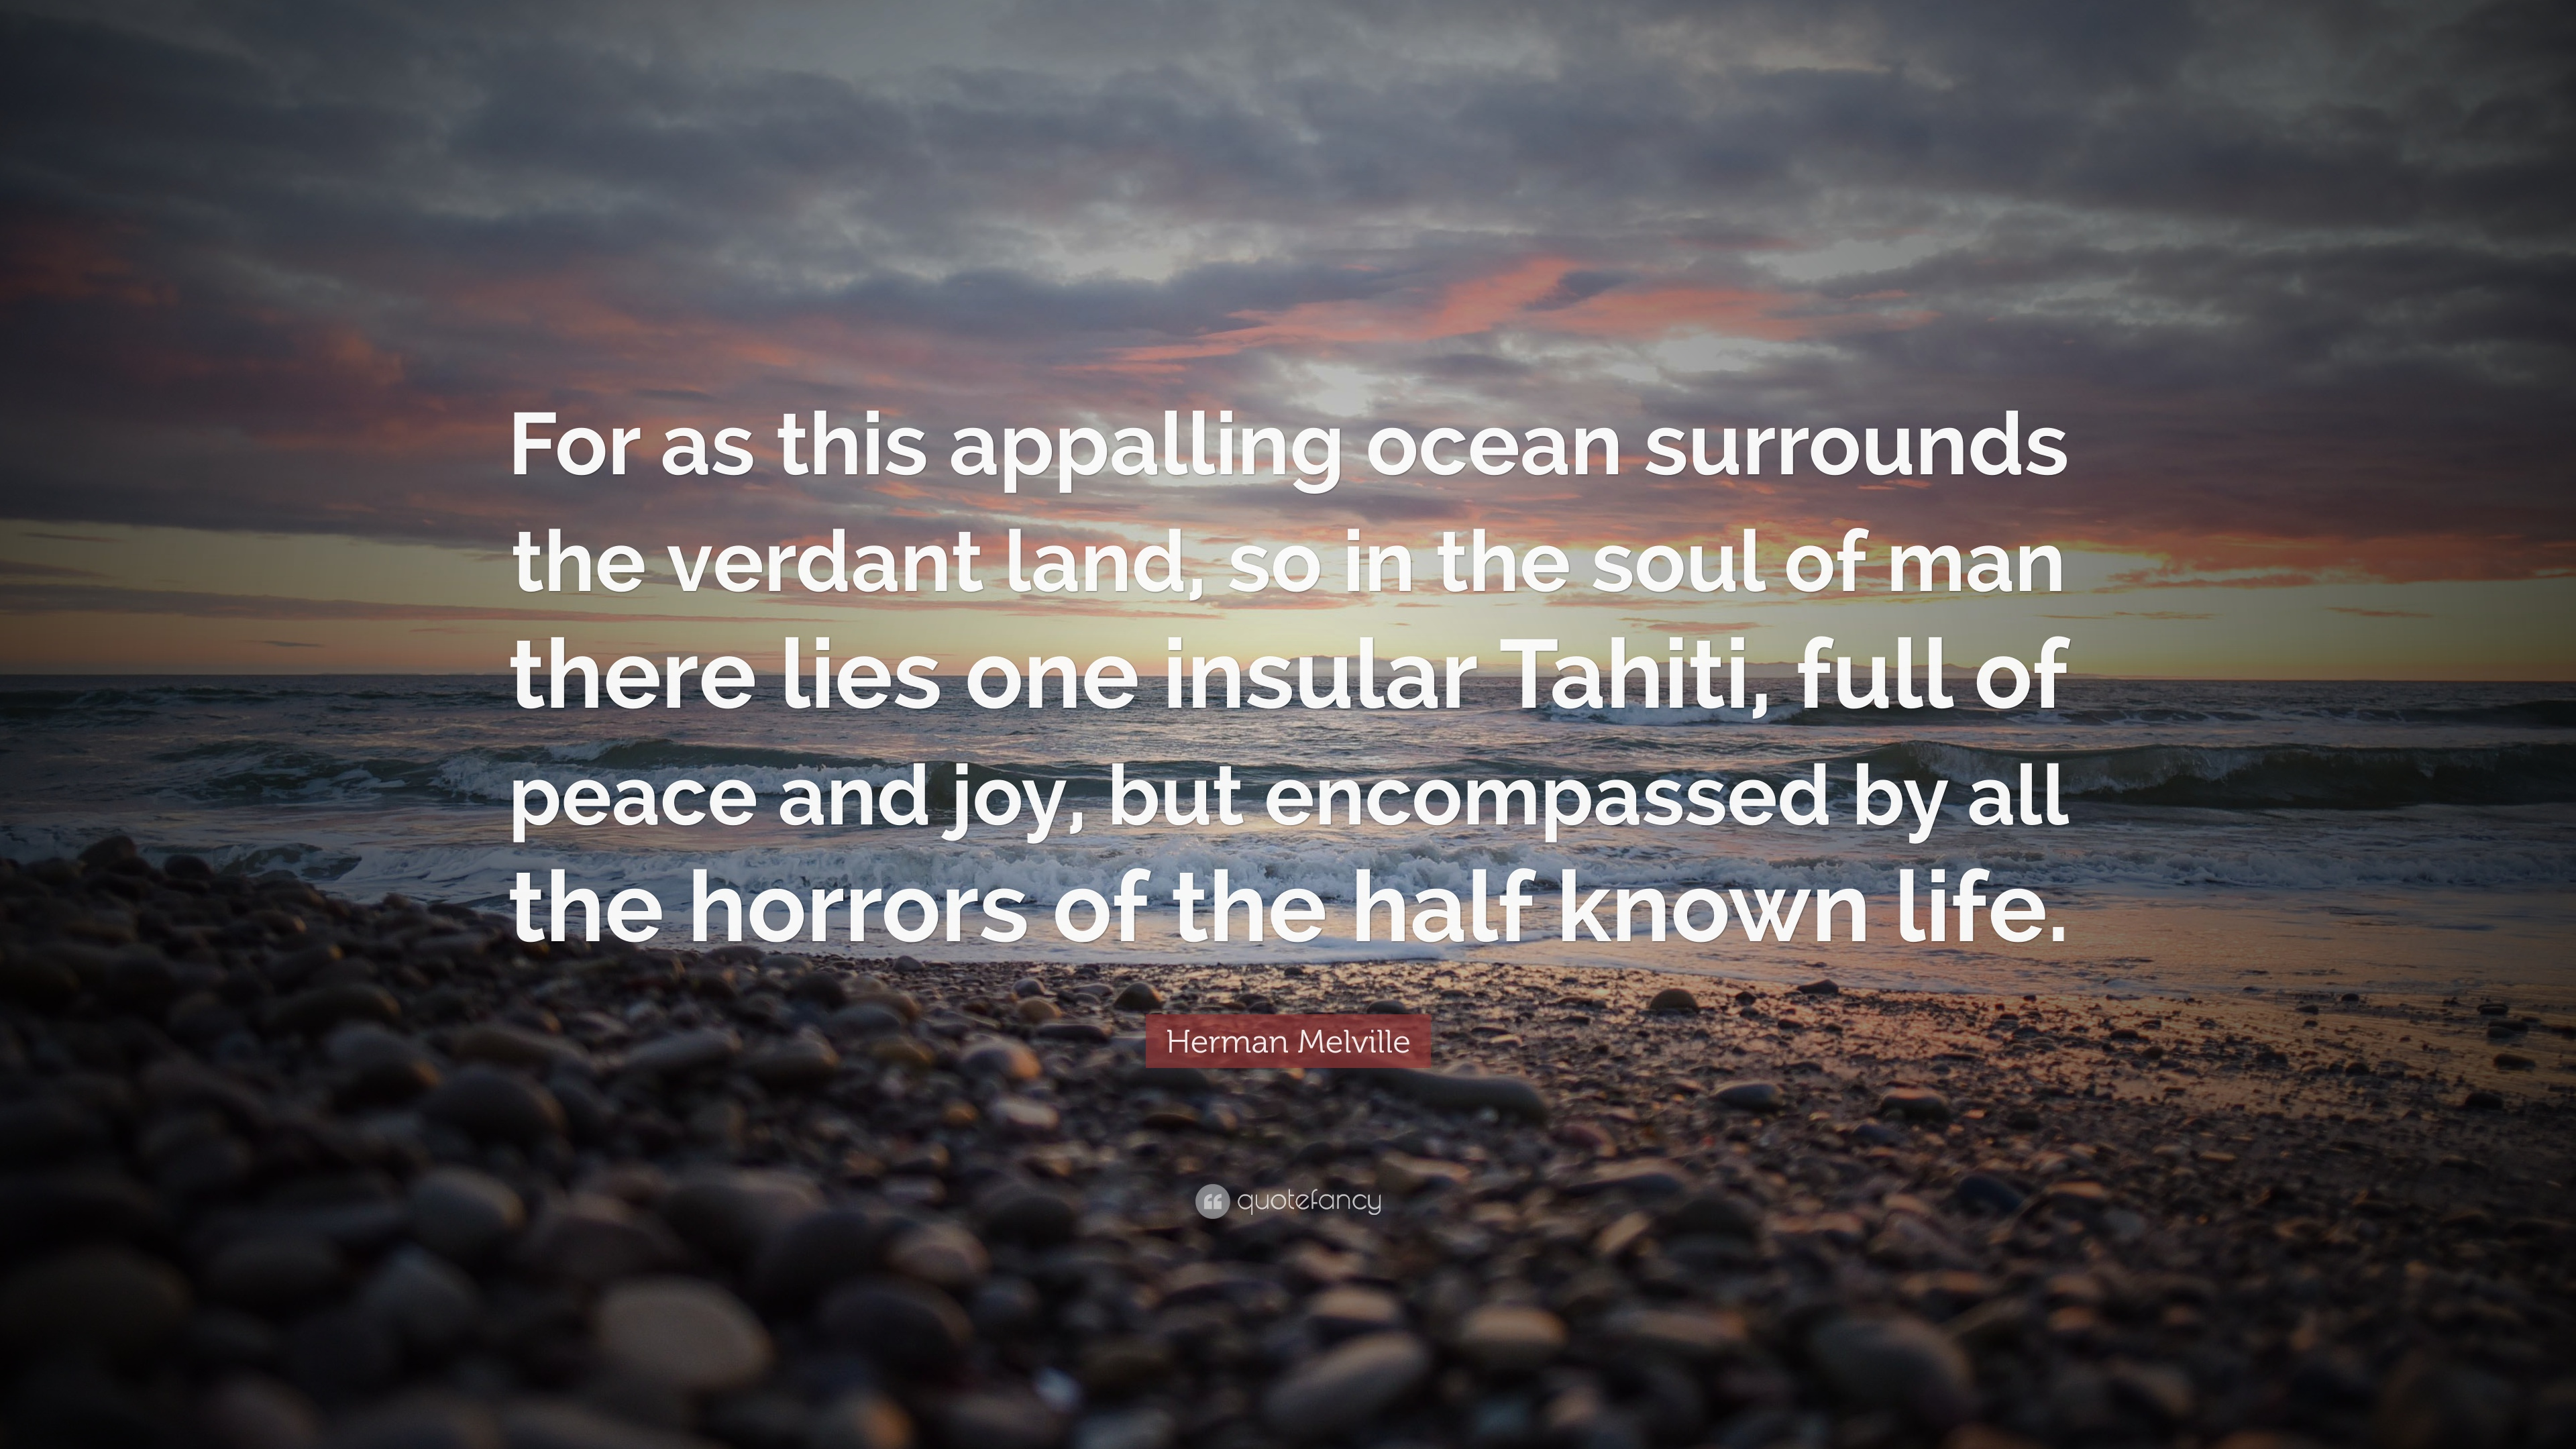 Herman Melville Quotes   Herman Melville Quote For As This Appalling Ocean Surrounds The